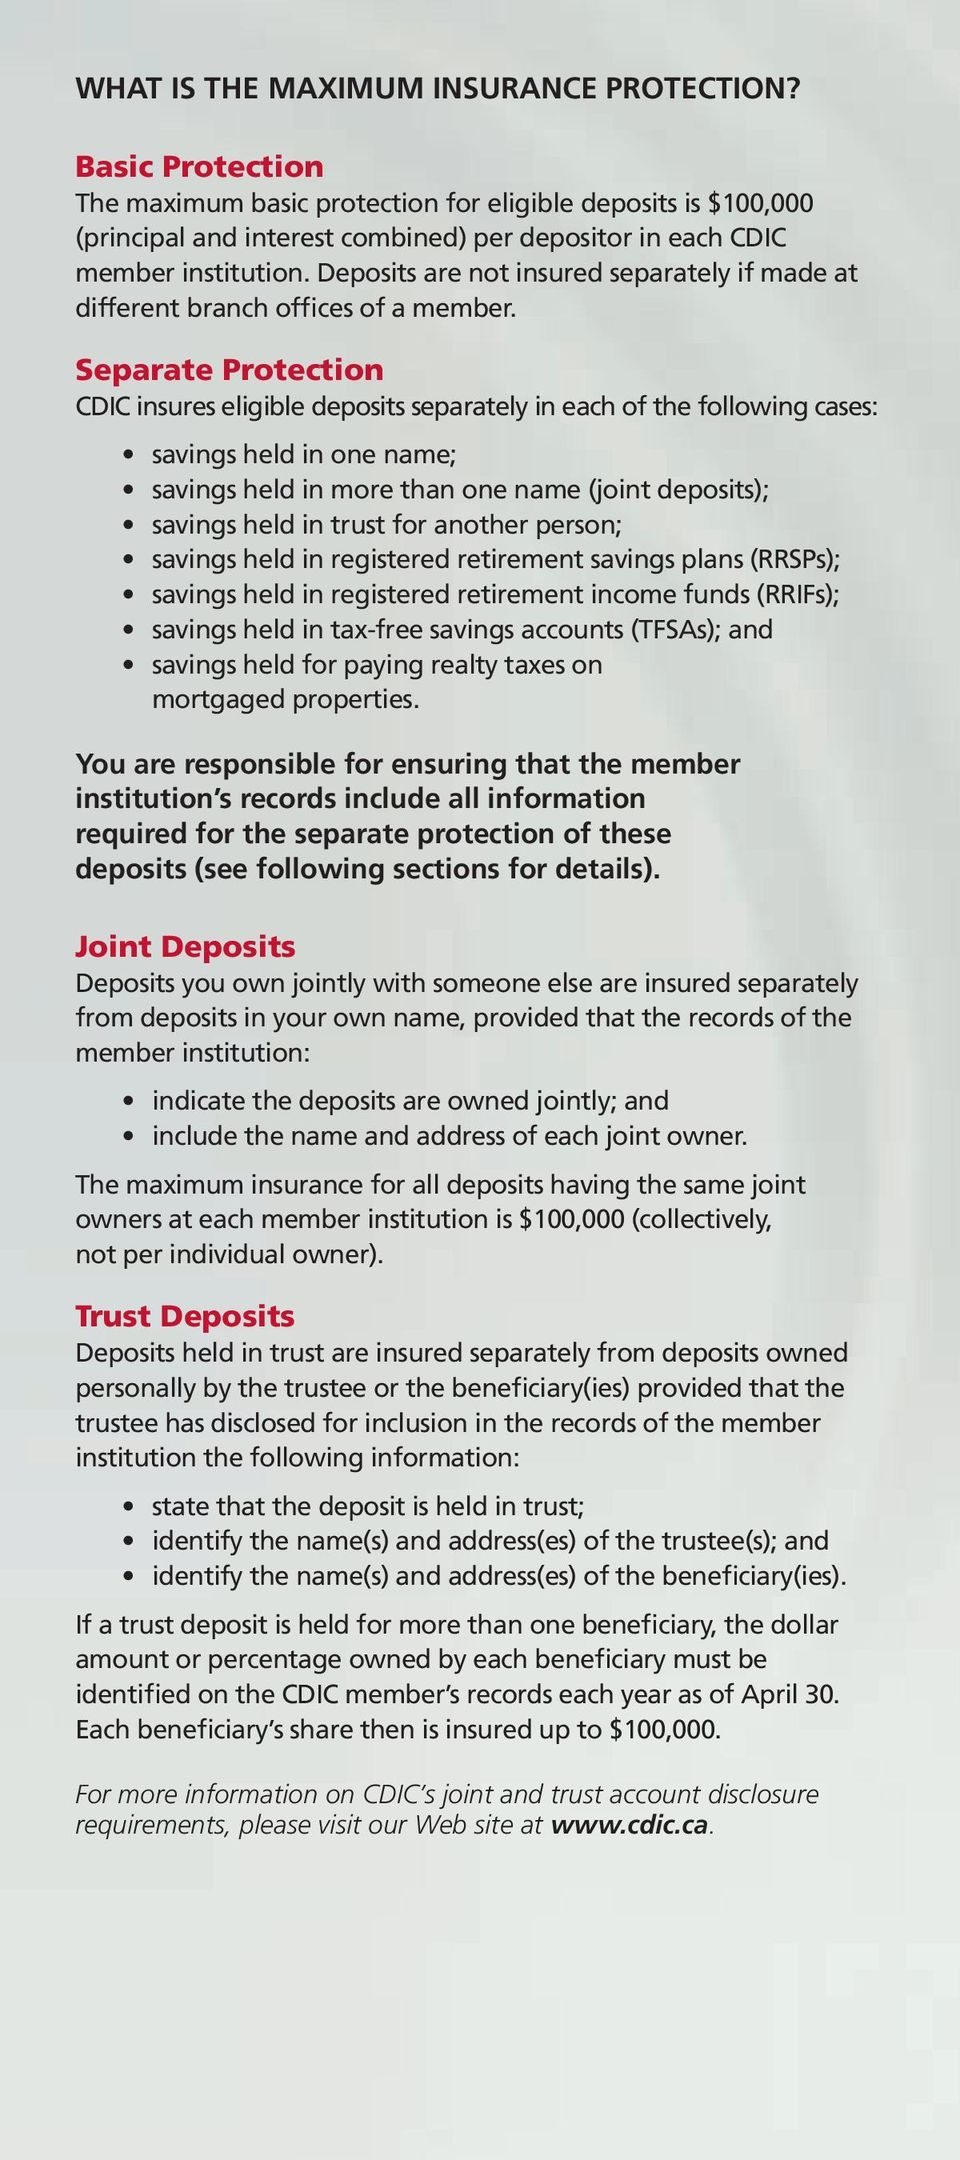 Deposits are not insured separately if made at different branch offices of a member.